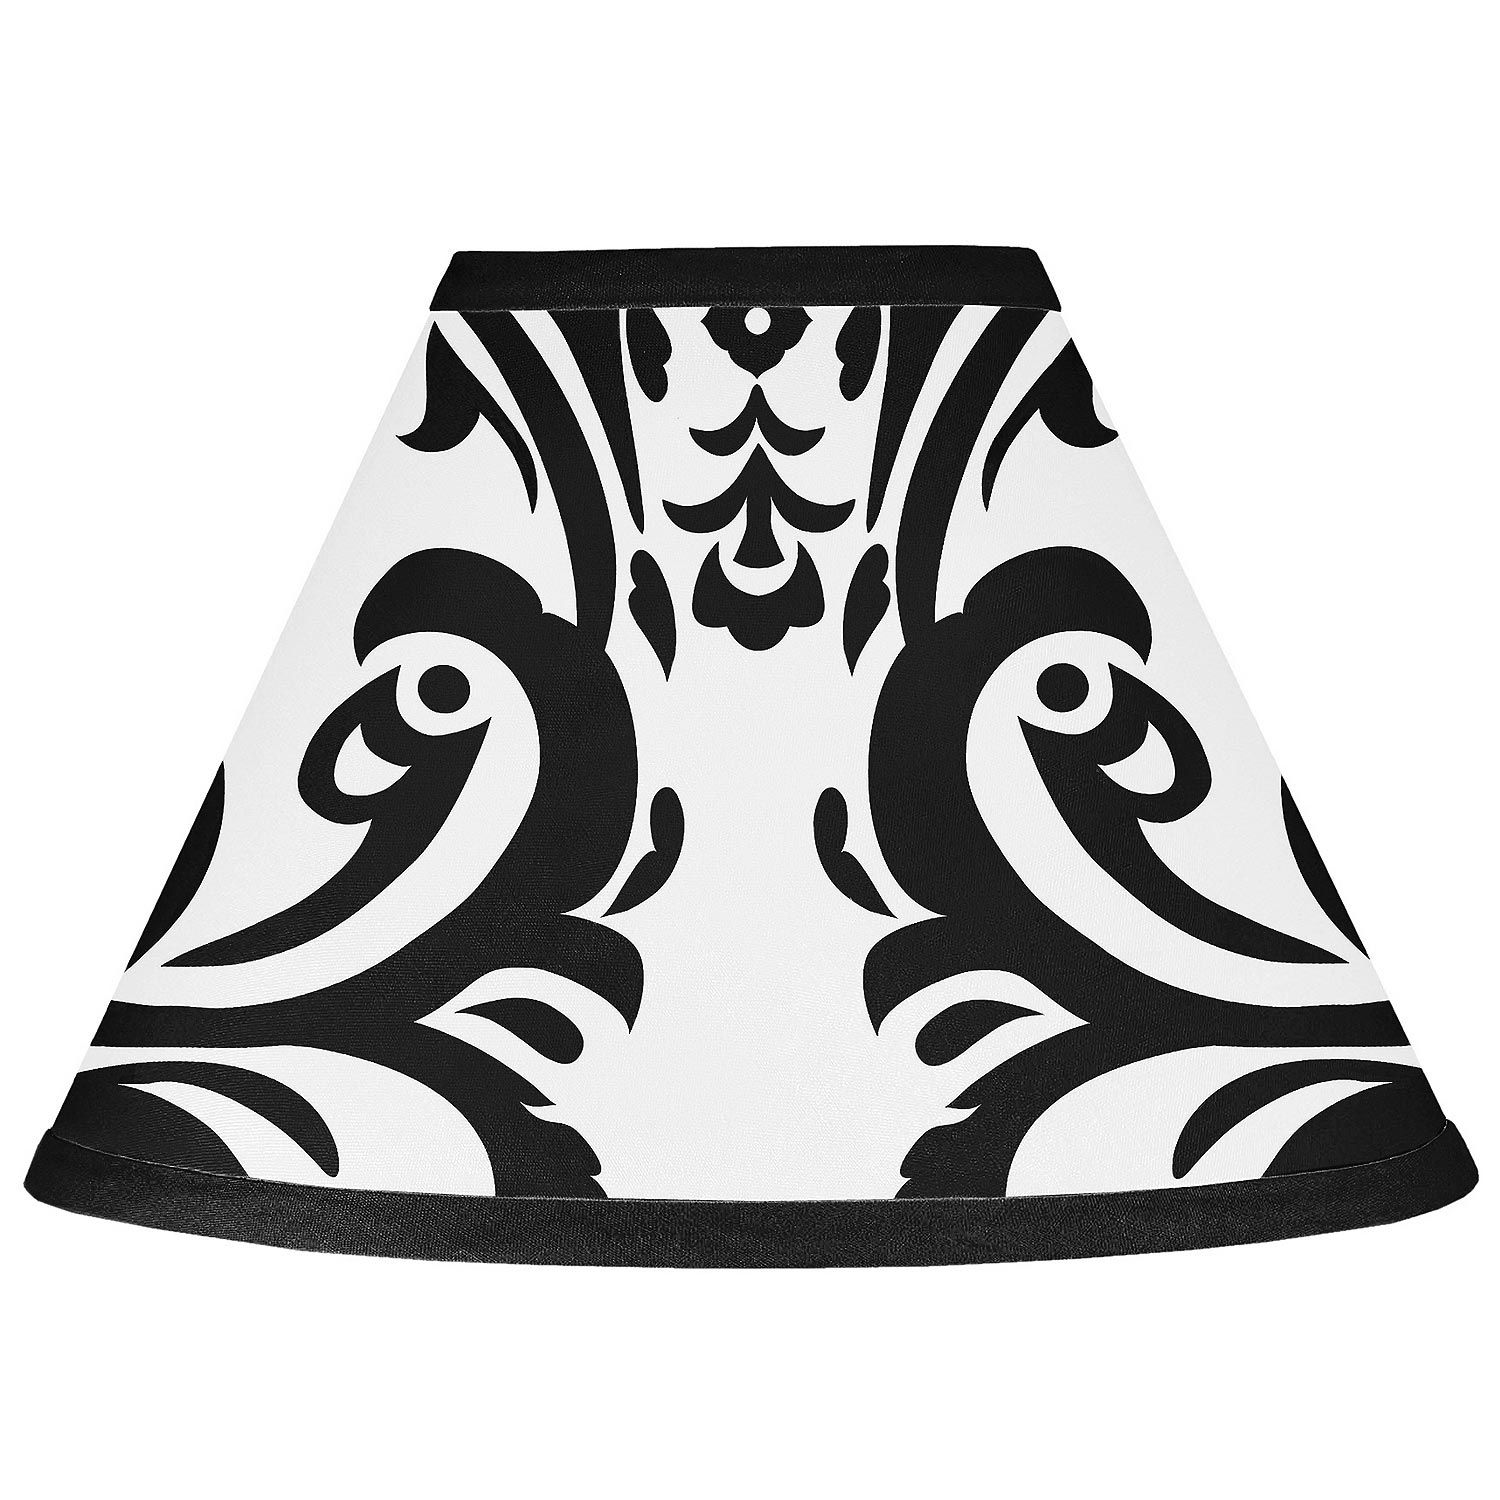 Image result for design for lamp drawing   Besties   Pinterest   Besties for Drawing Lamp Shade  53kxo